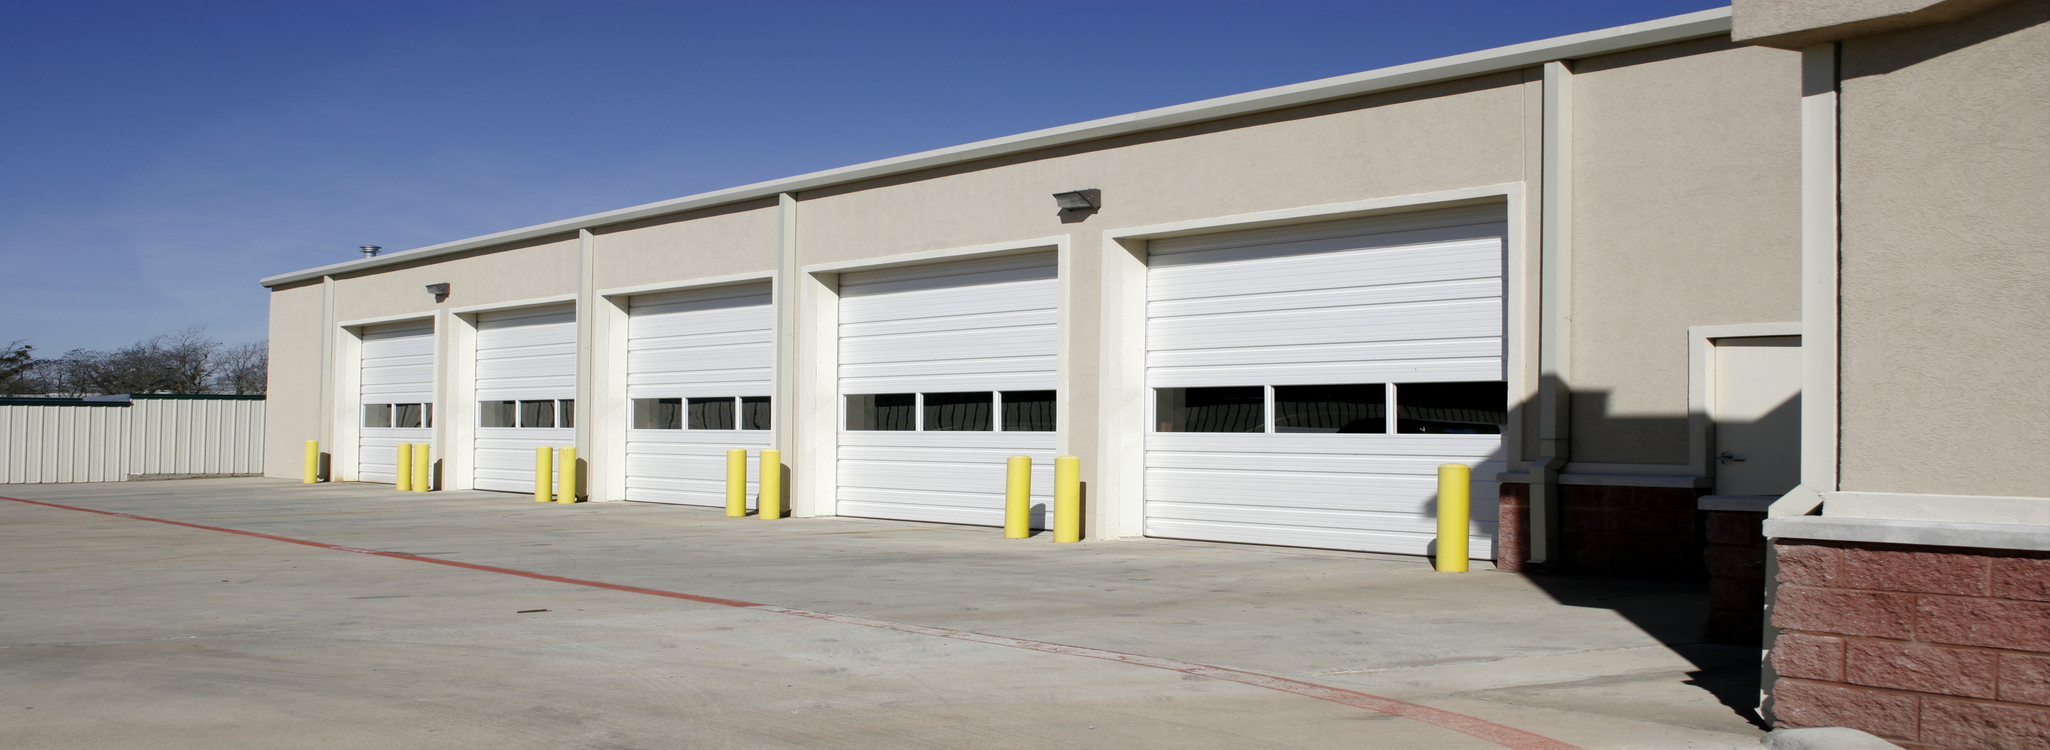 Auto Doctor Commercial Construction Garage